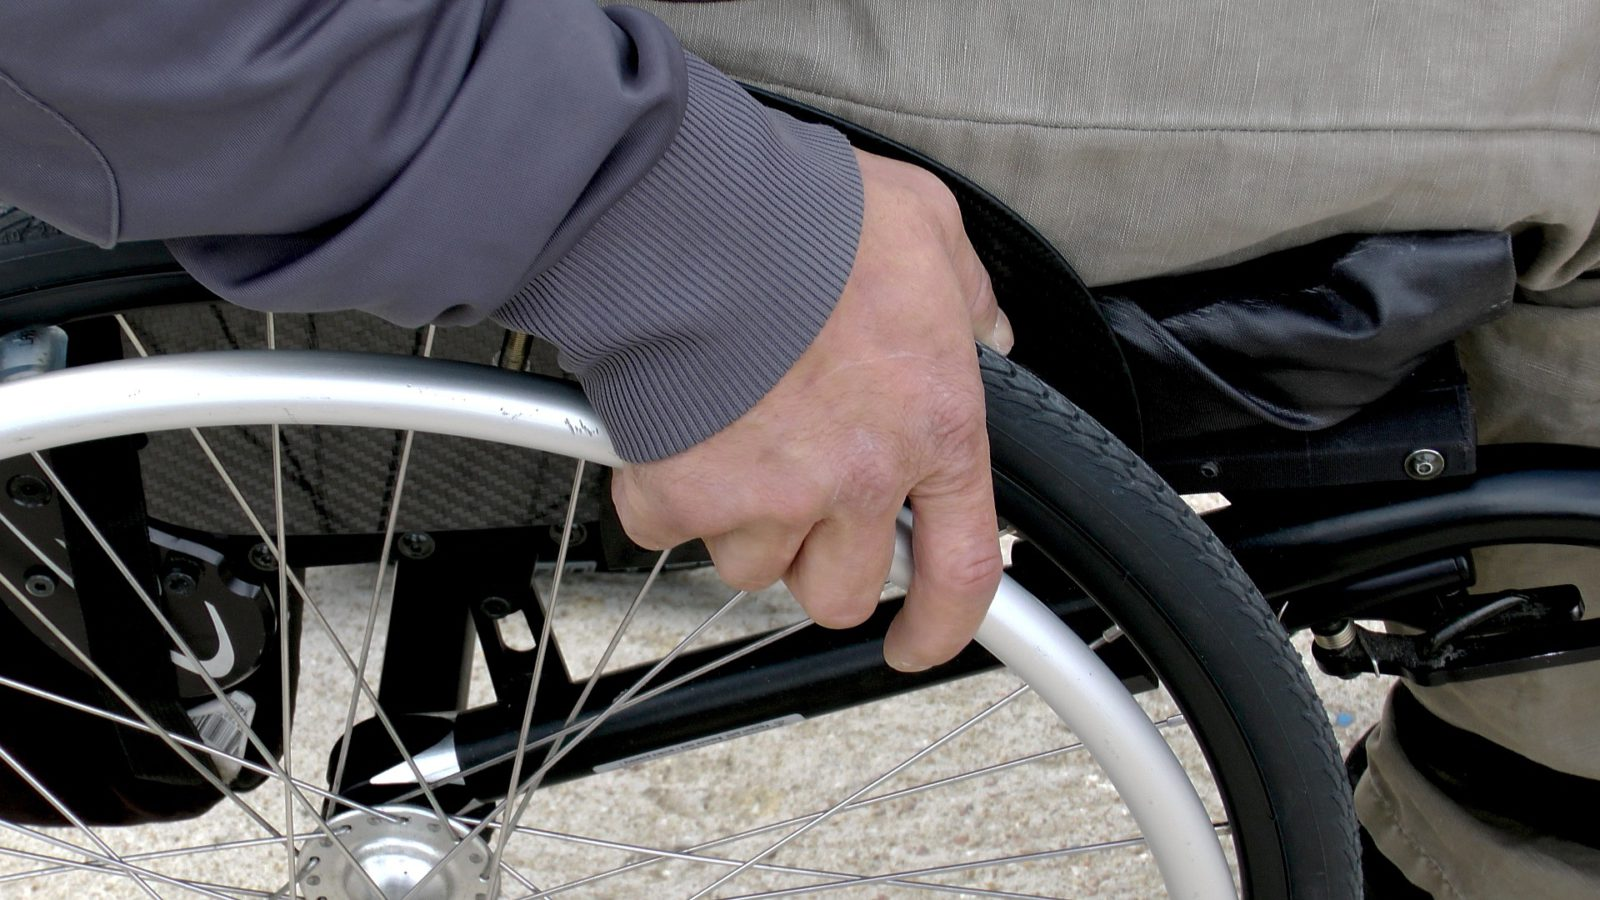 The national strategy for disabled people in the UK